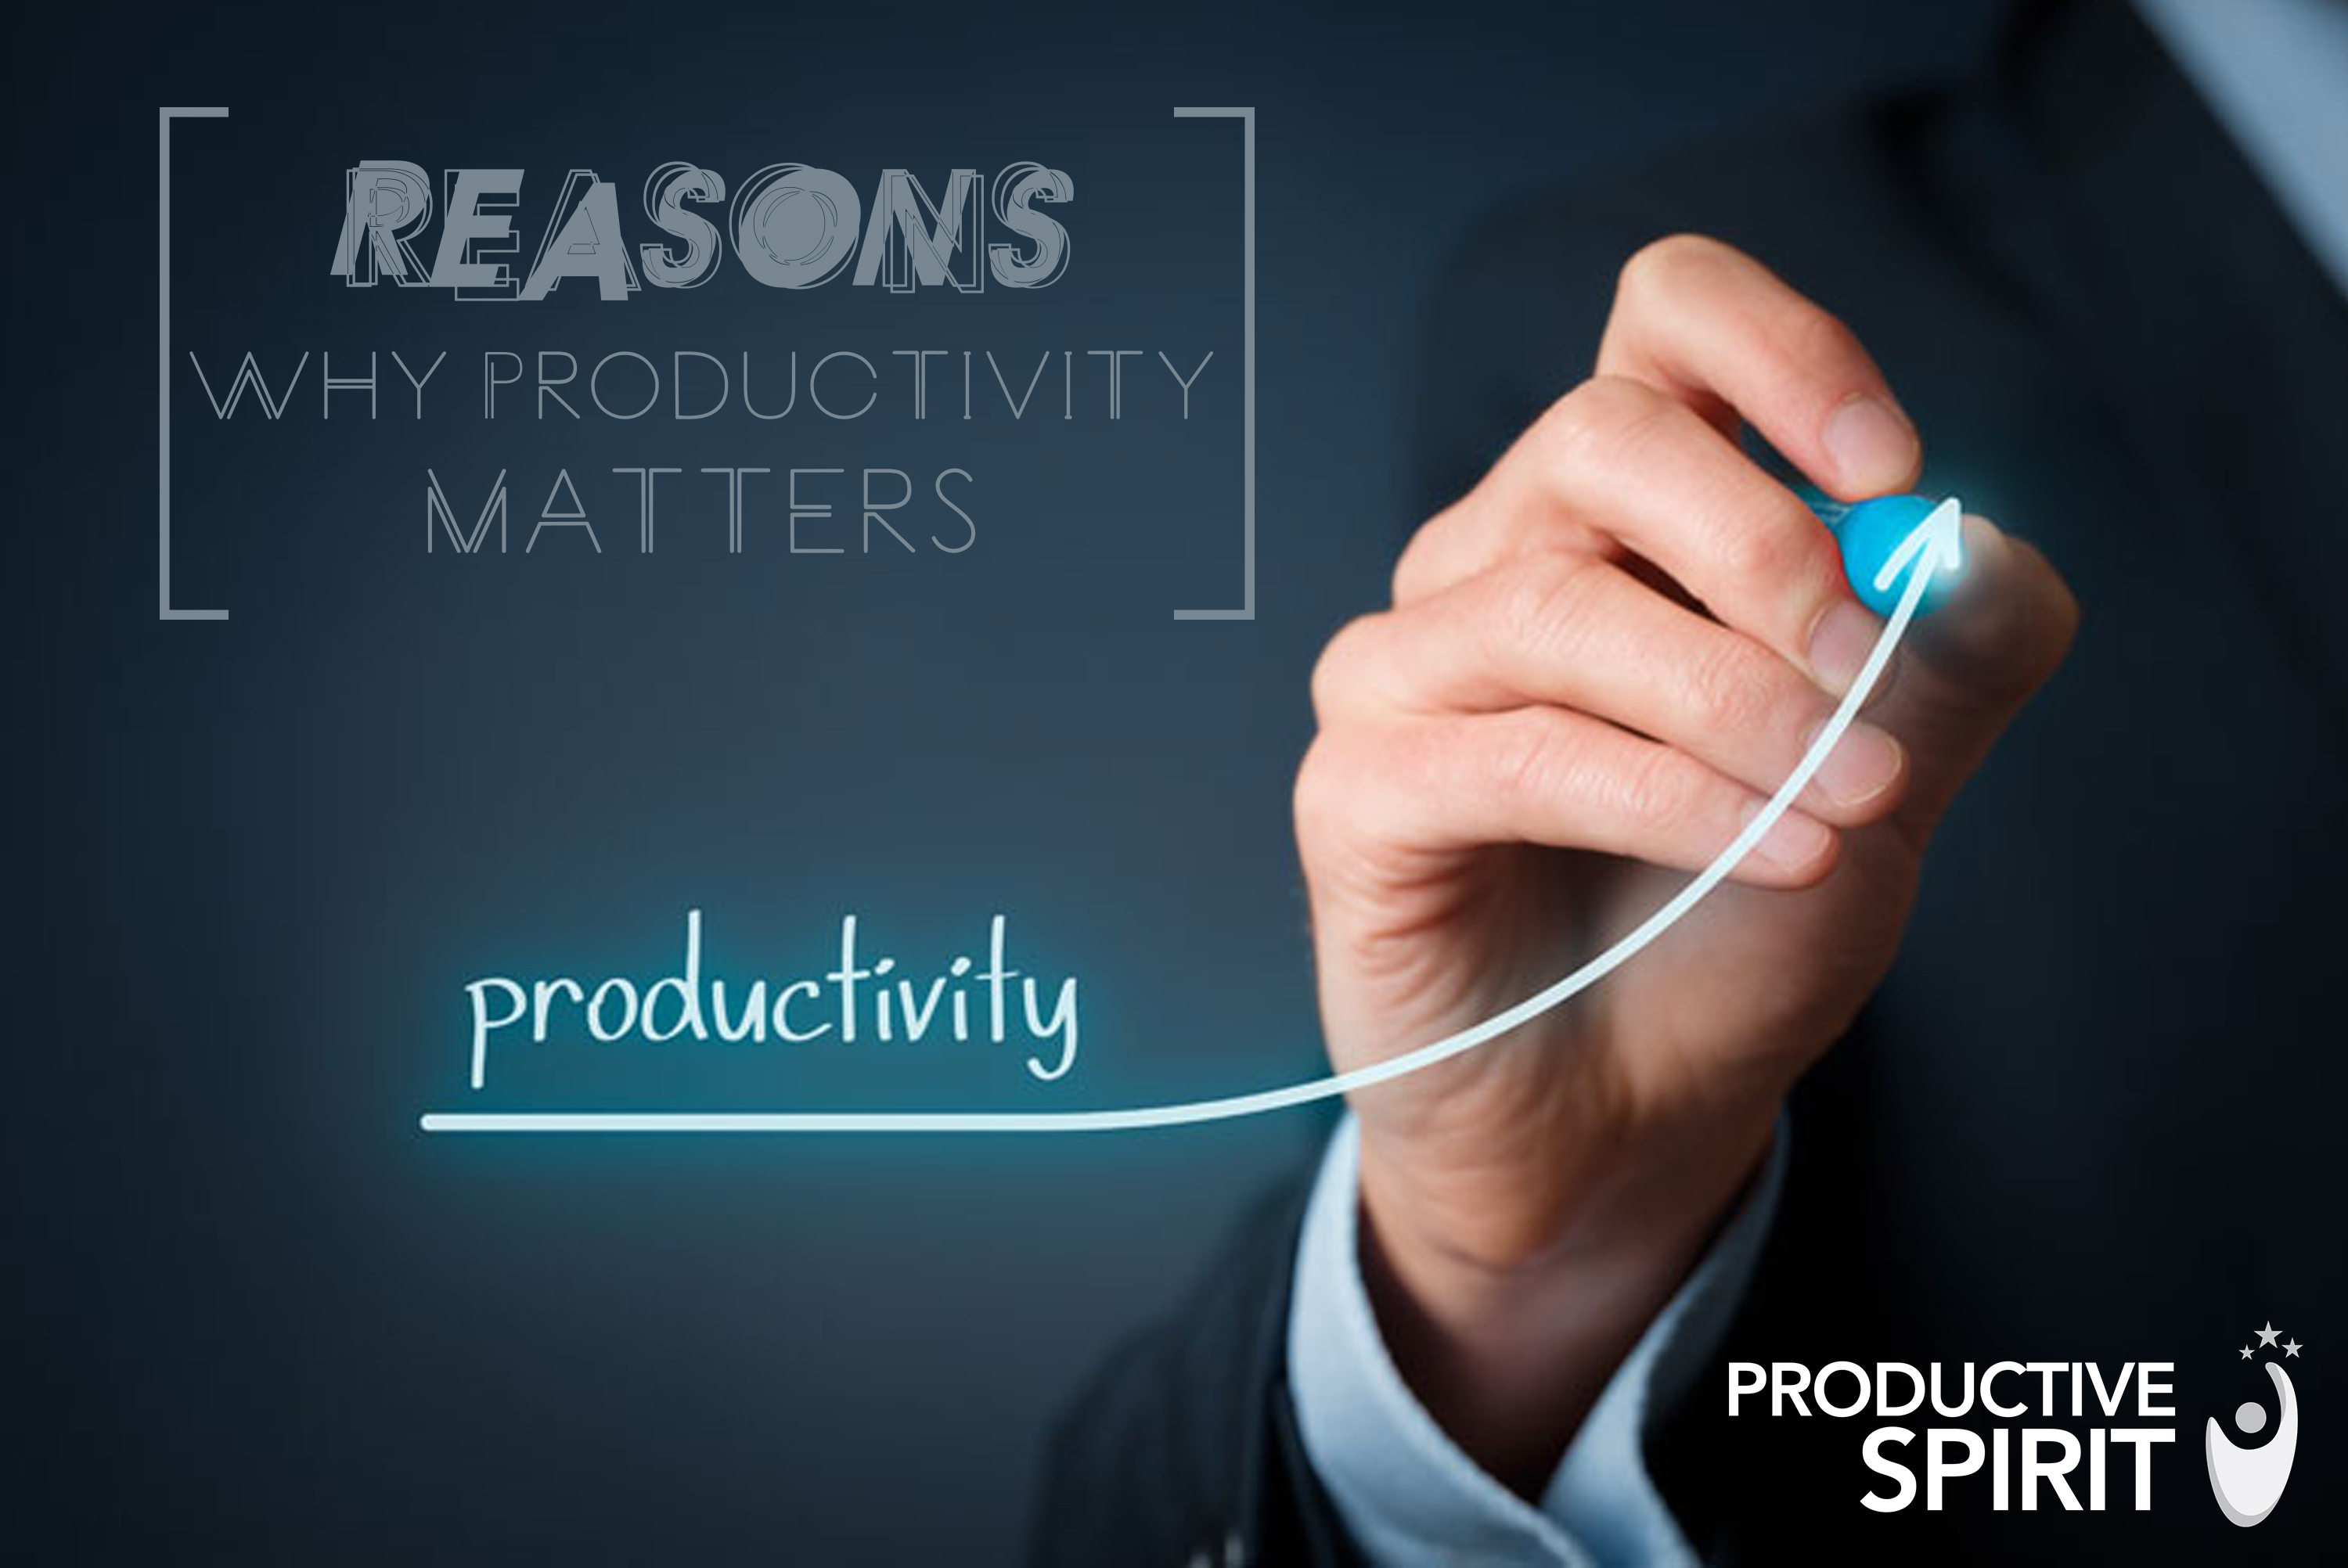 About Productivity here is all you need to know about productivity and why it